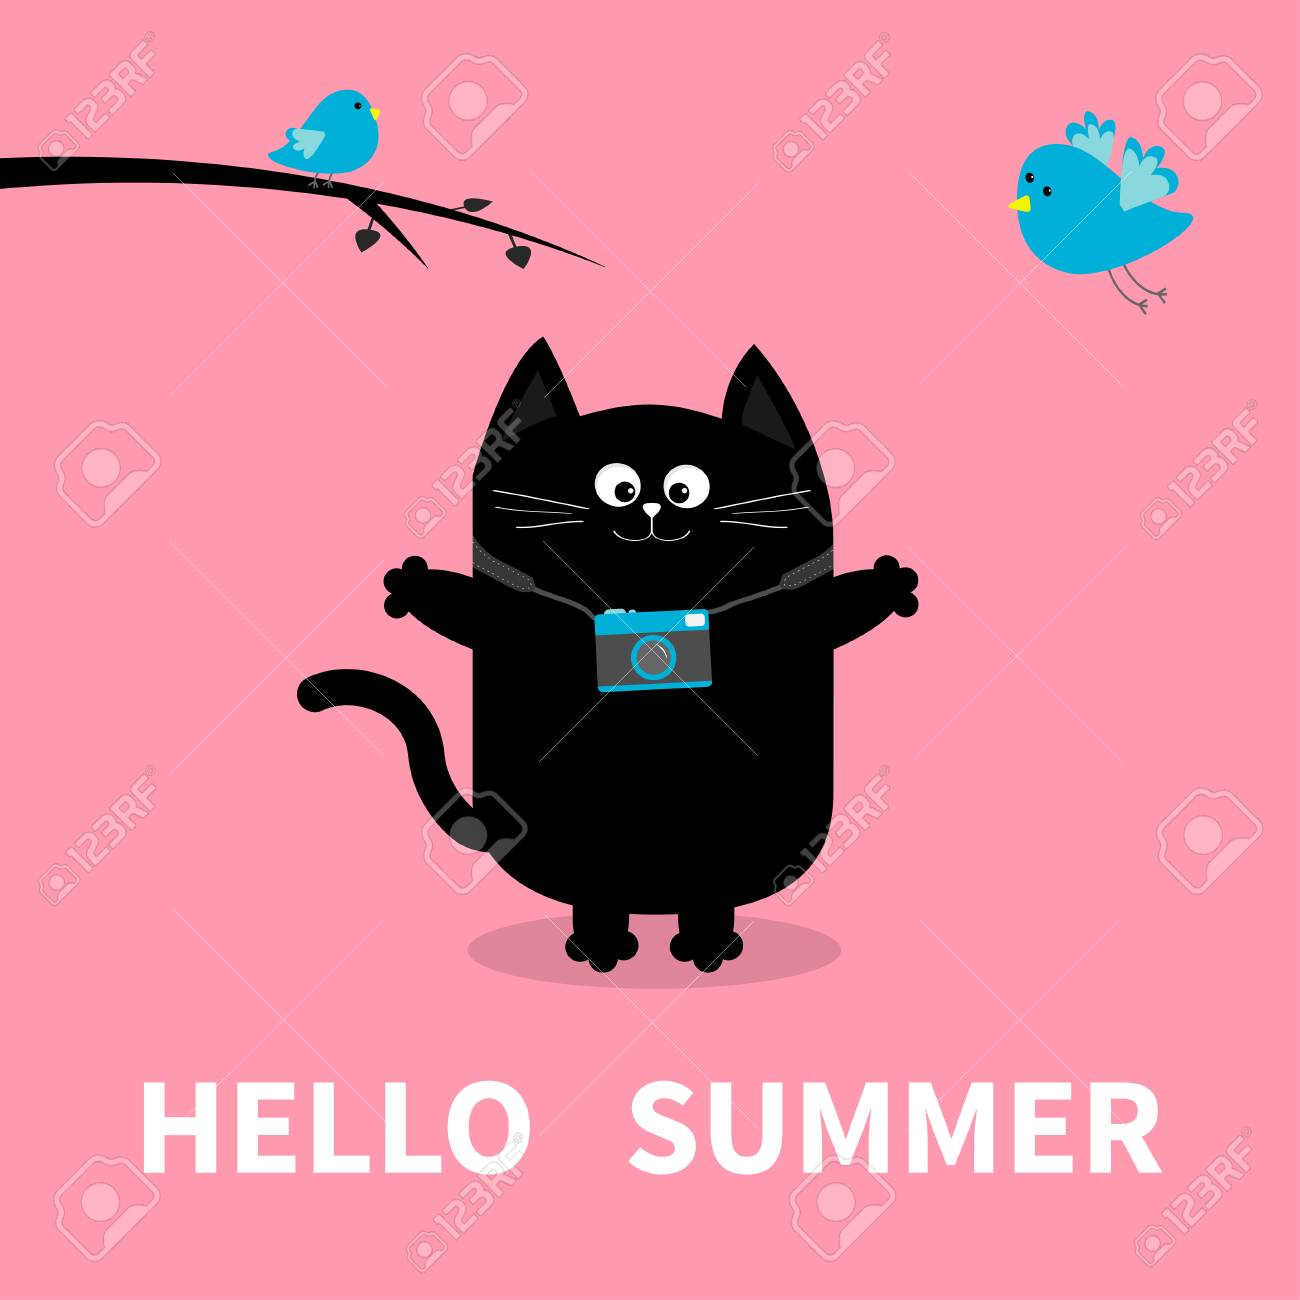 Hello Summer. Black Cat. Photo Camera, Bird, Branch. Cute Cartoon Character